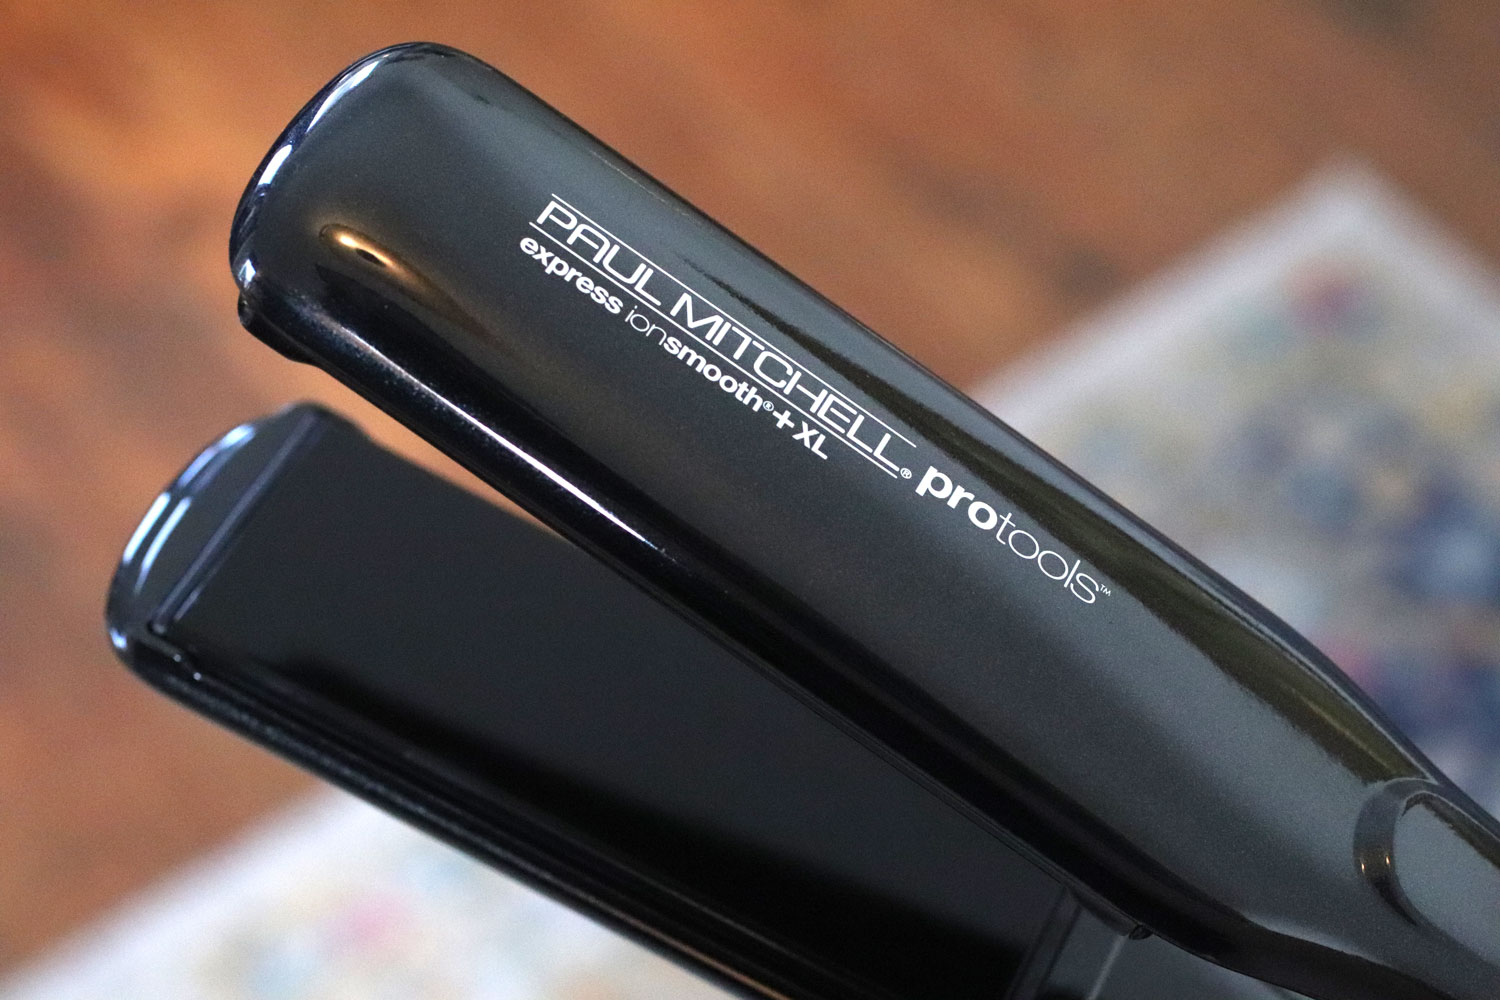 Paul Mitchell Smooth + XL flat iron giveaway